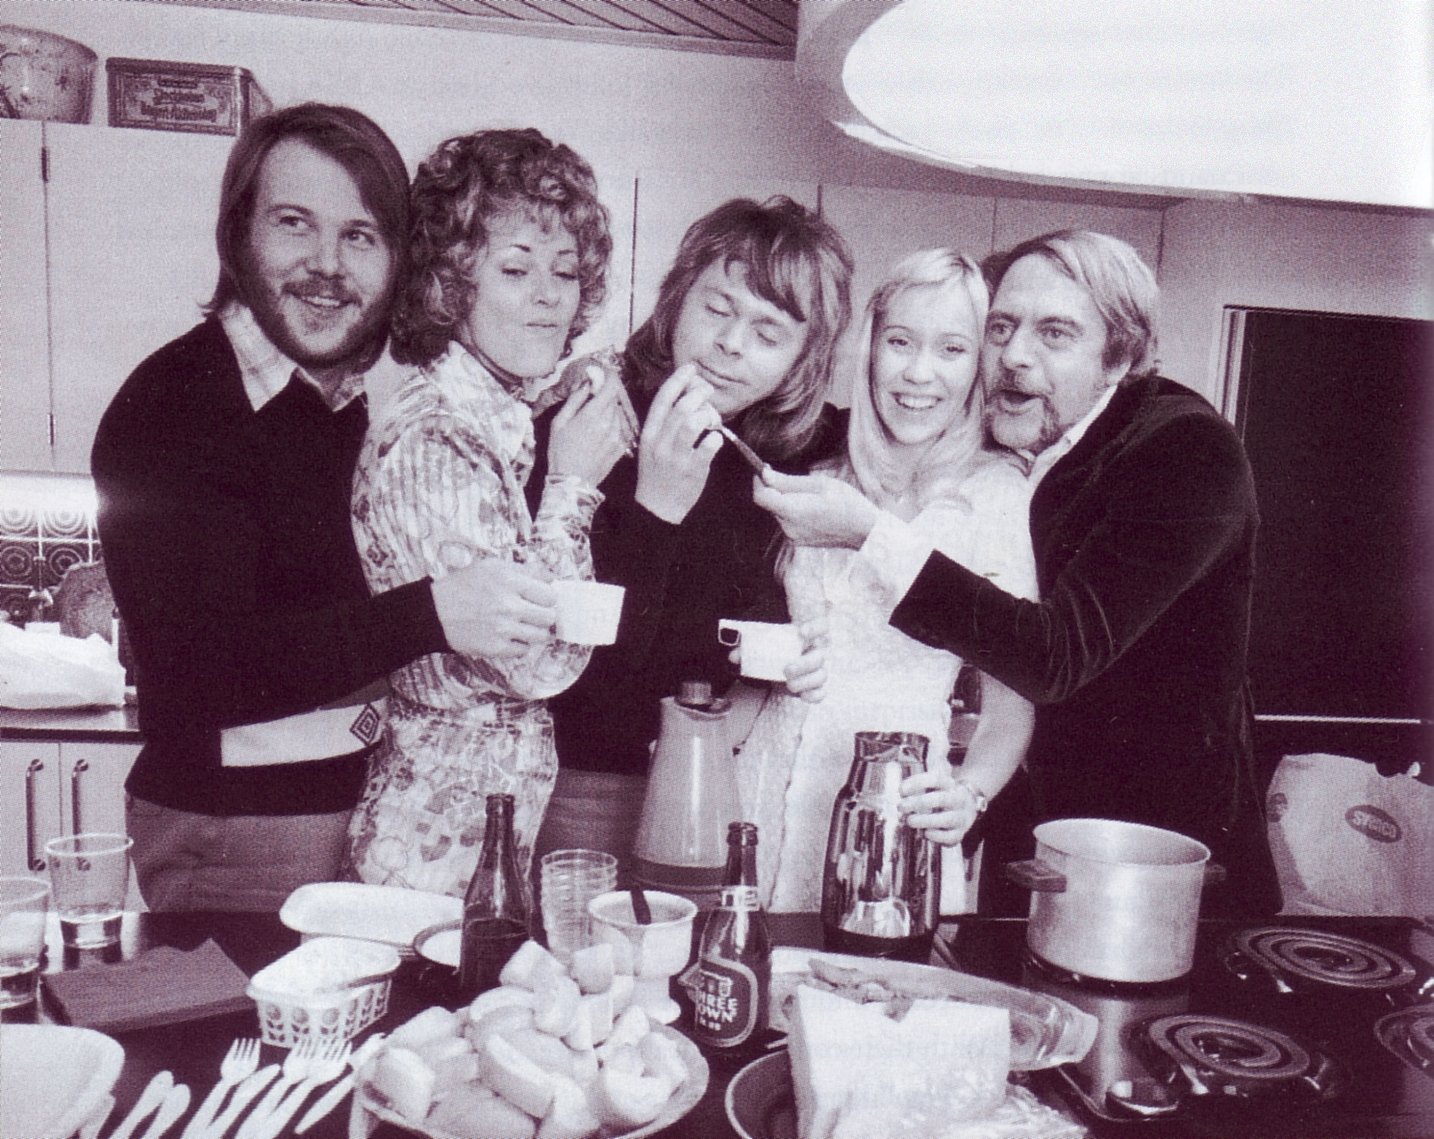 abba_waterloo_in_kitchen